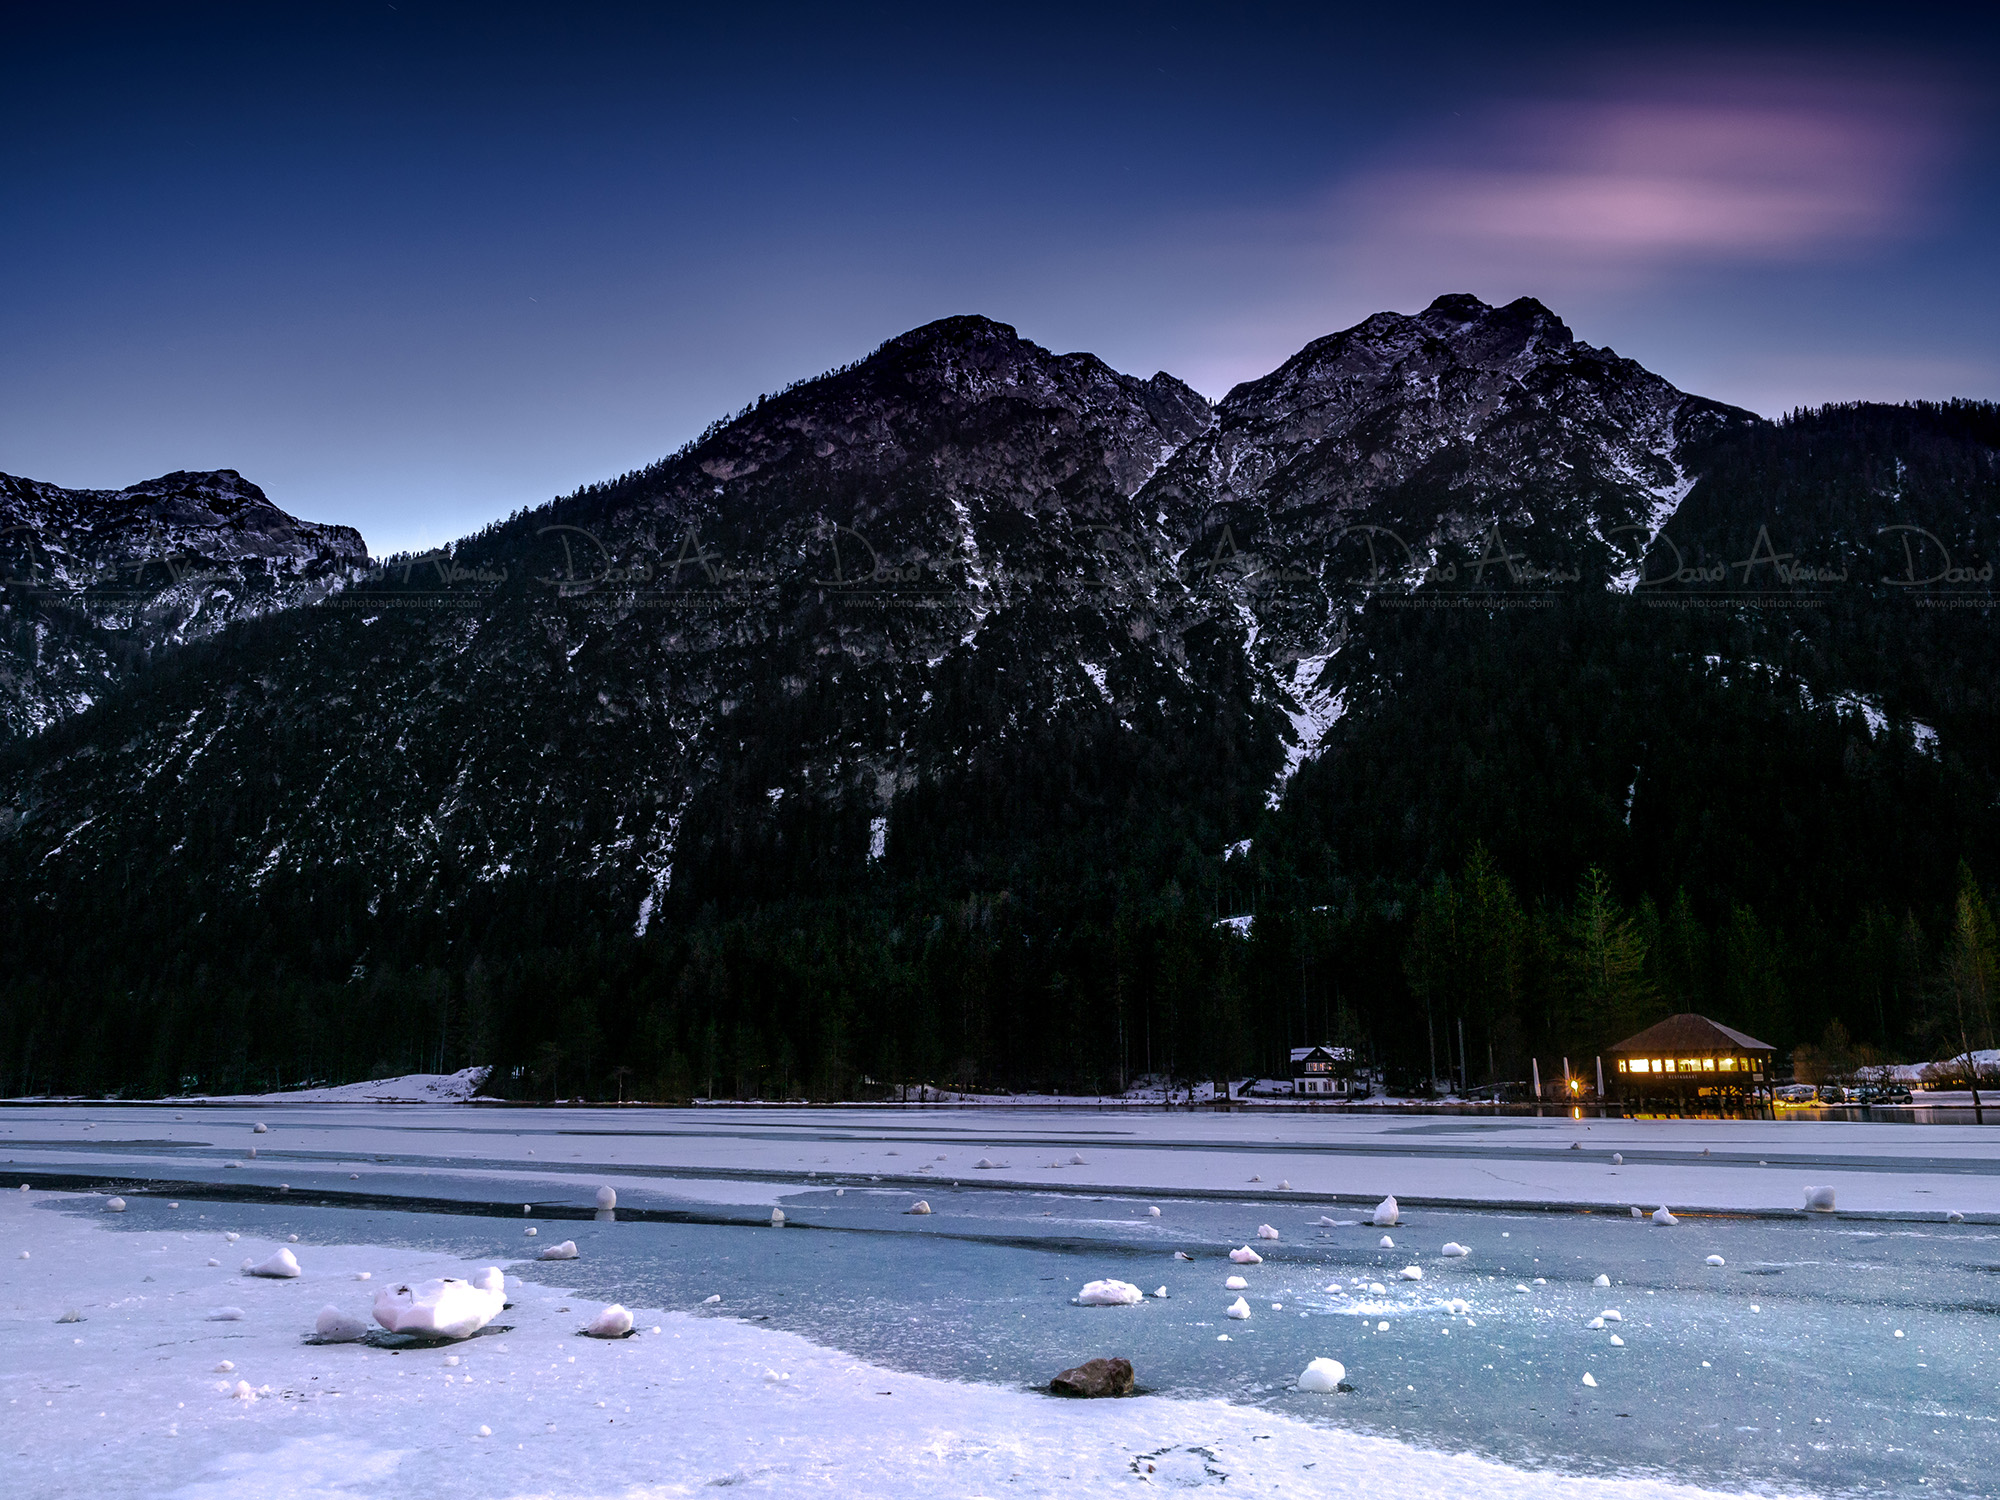 Sunset on the icy lake of Dobbiaco